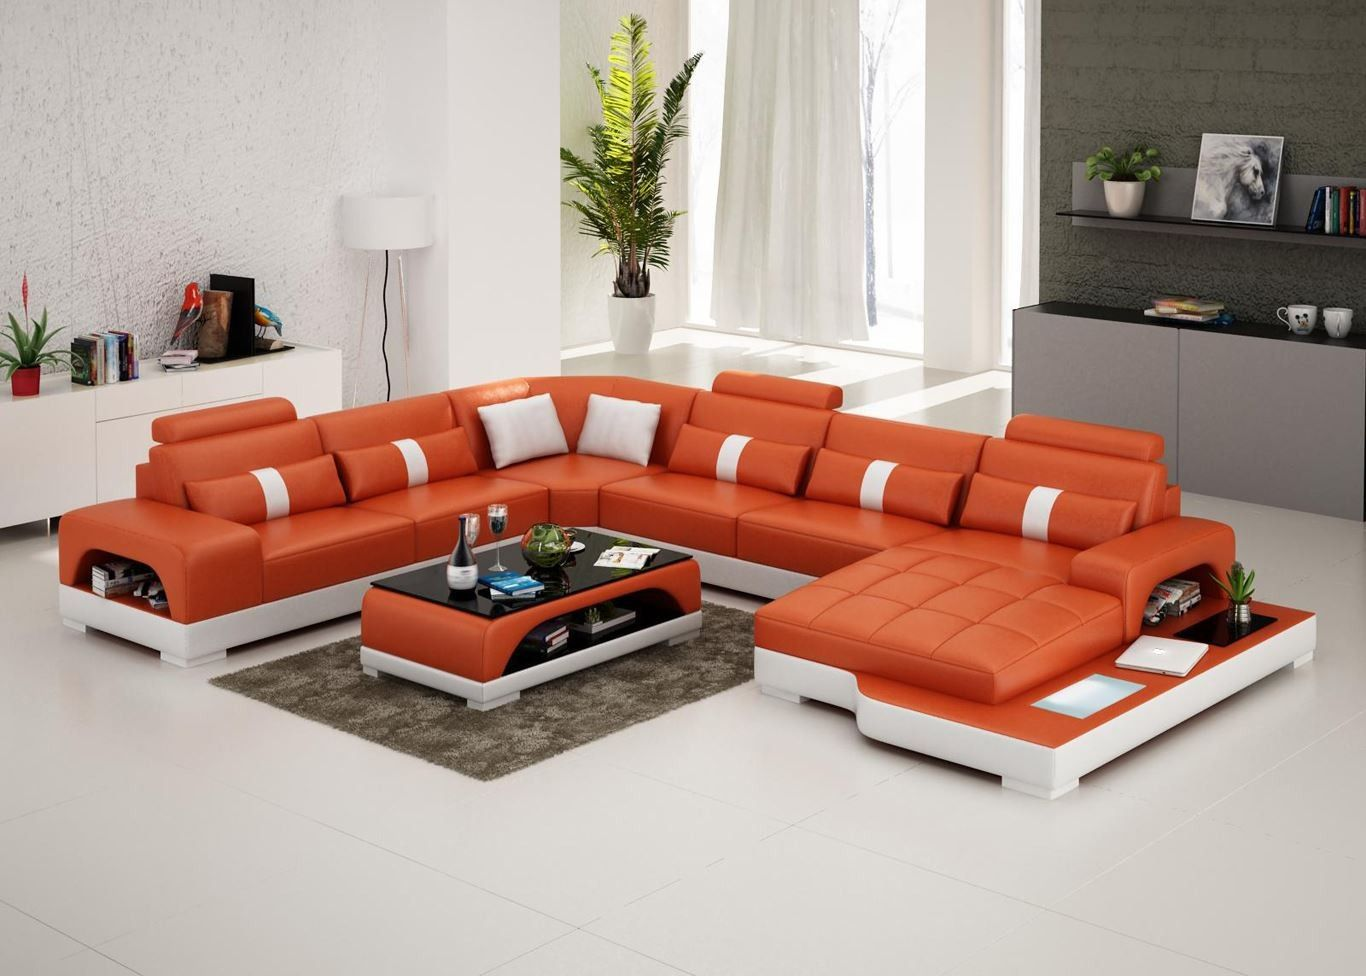 Attrayant The Connie Sectional Sofa Is The Most Popular Model That Opulent Items Has  To Offer. It Is A Time Tested, Minimalist Design And Comes Both In A Single  Color ...